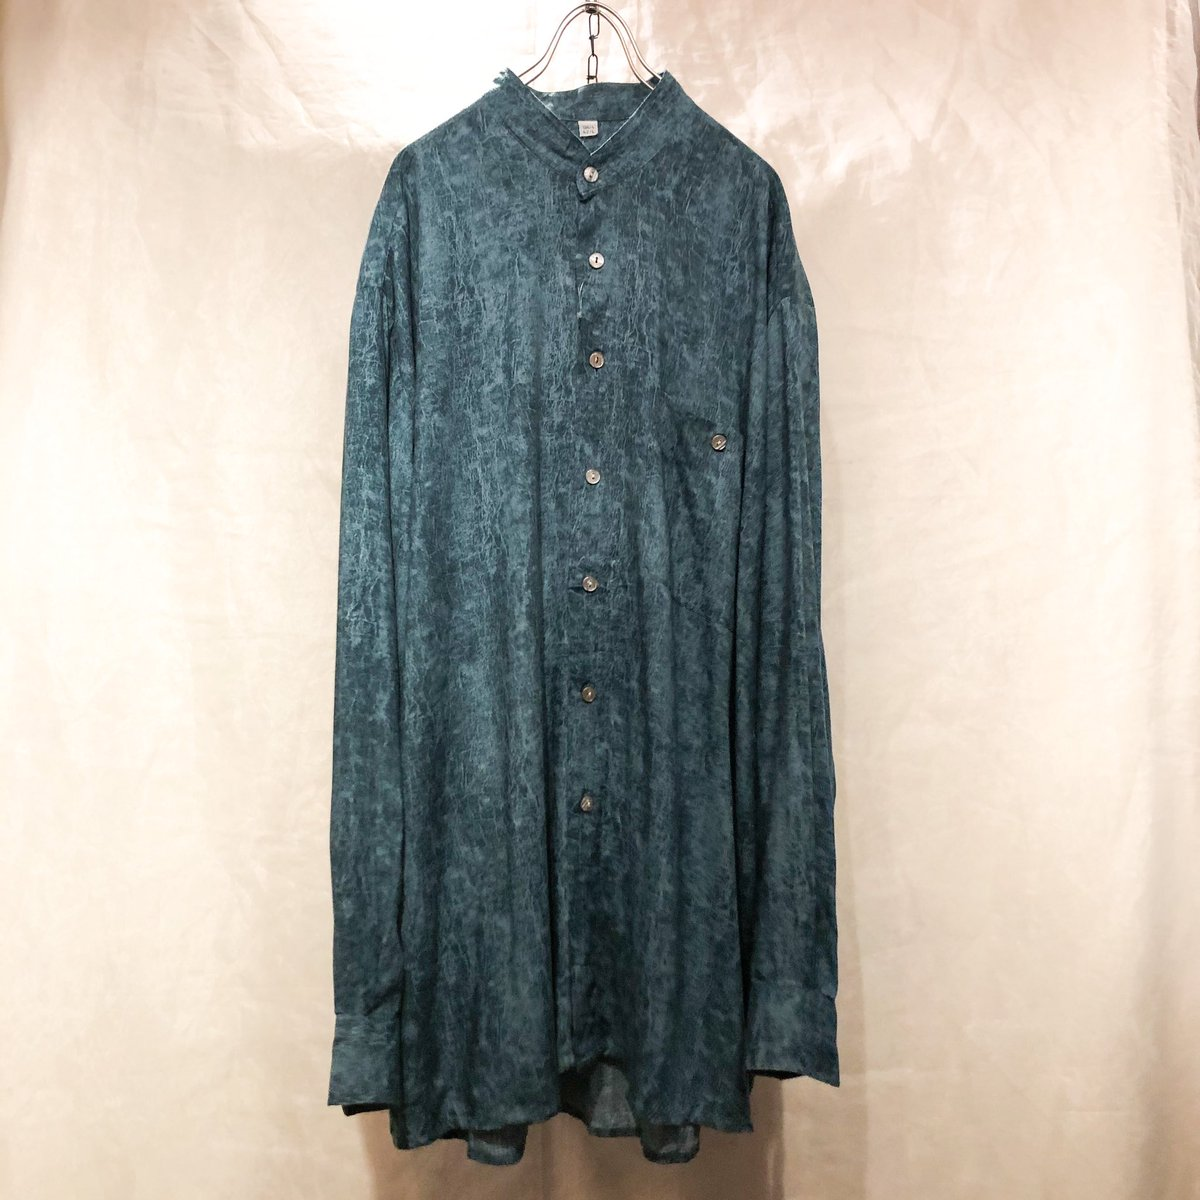 "select vintage & design used RAGLA MAGLA -shimokitazawa- ・ ・ ▶︎new stuff ""mottled pattern nocollar rayon shirts"" ¥5,800(tax in) ・ ・ #raglamagla #shimokitazawa #used #vintage #ラグラマグラ #下北沢 #下北 #古着屋 #古着 #シャツ #ノーカラーシャツ #レーヨンシャツpic.twitter.com/8qUm0GCHsl"